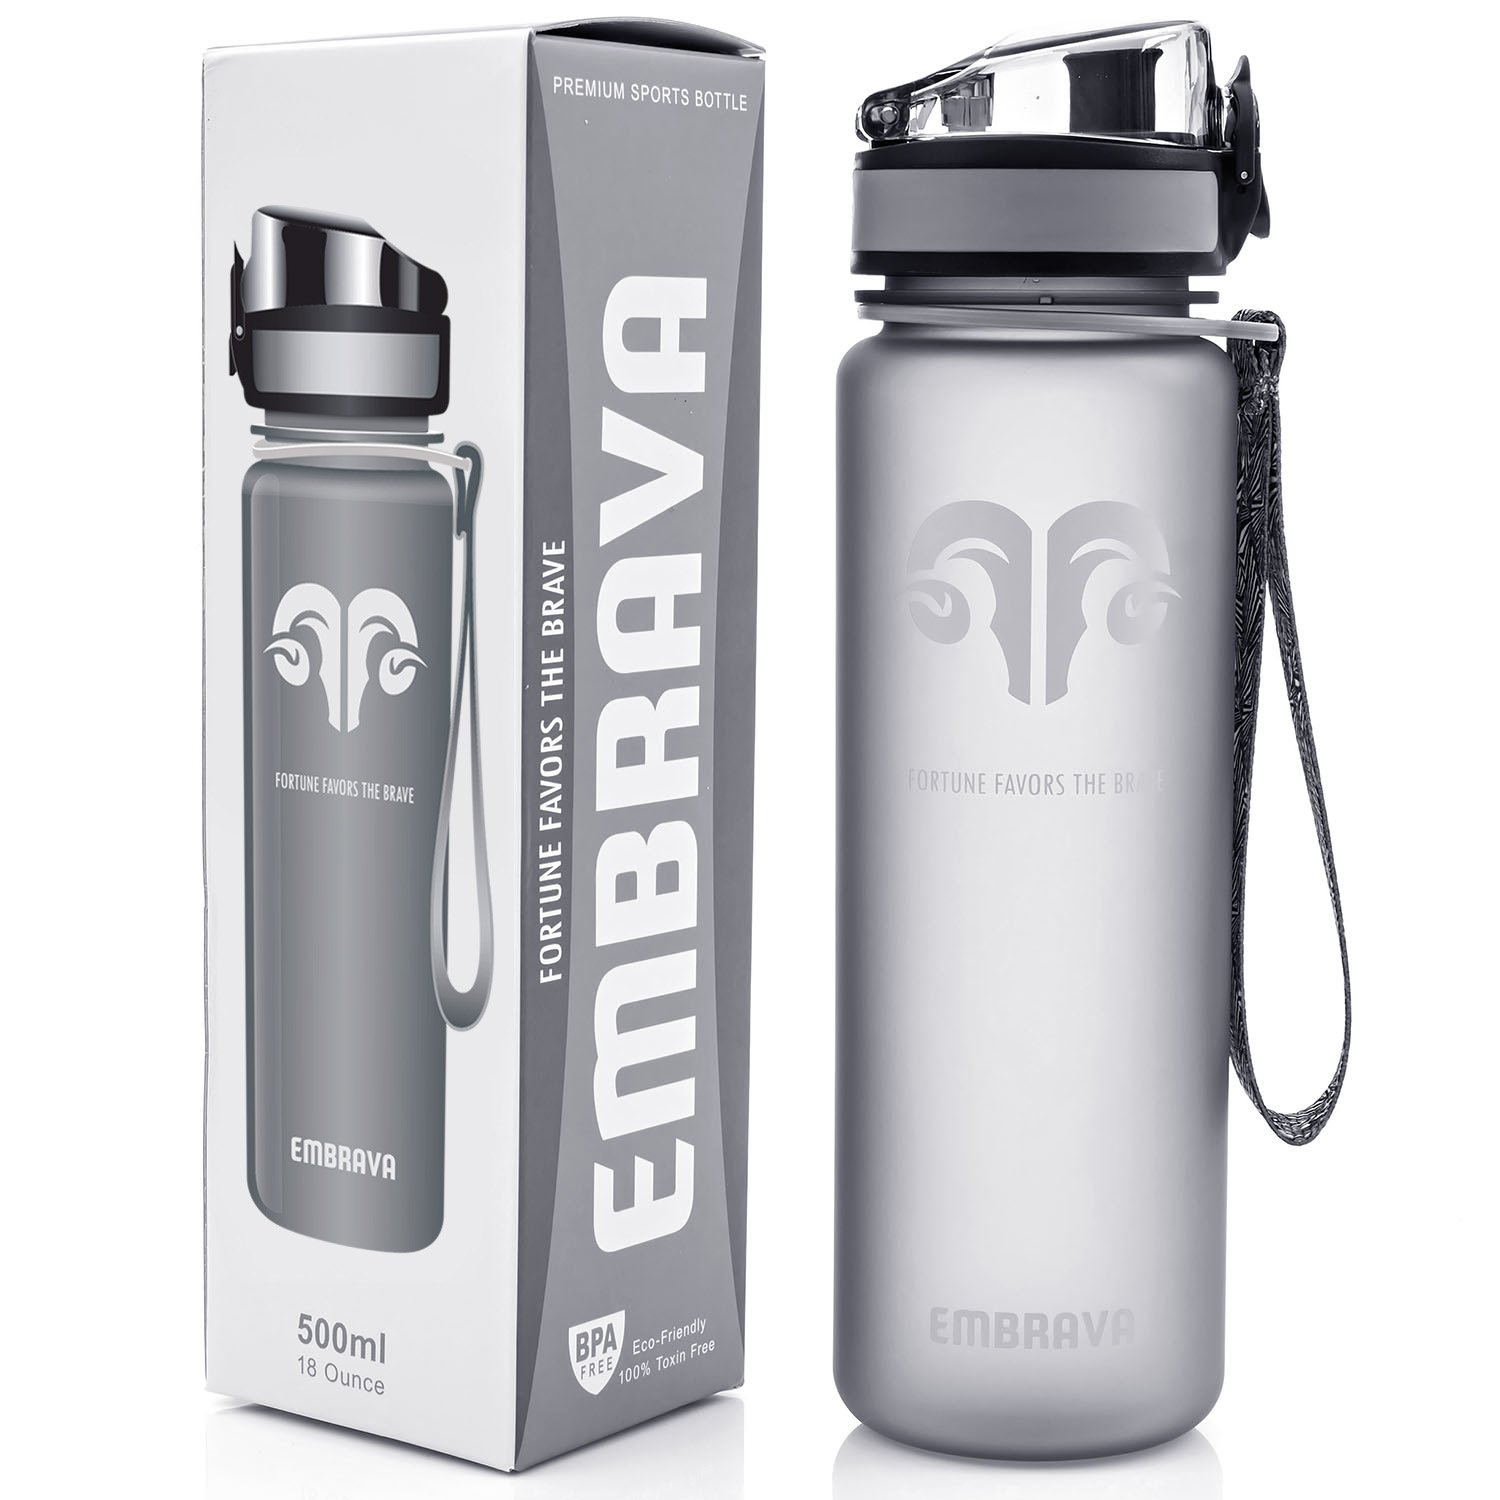 70d09d23428 Best Sports Water Bottle - 18oz Small - Eco Friendly   BPA-Free Plastic -  For Running